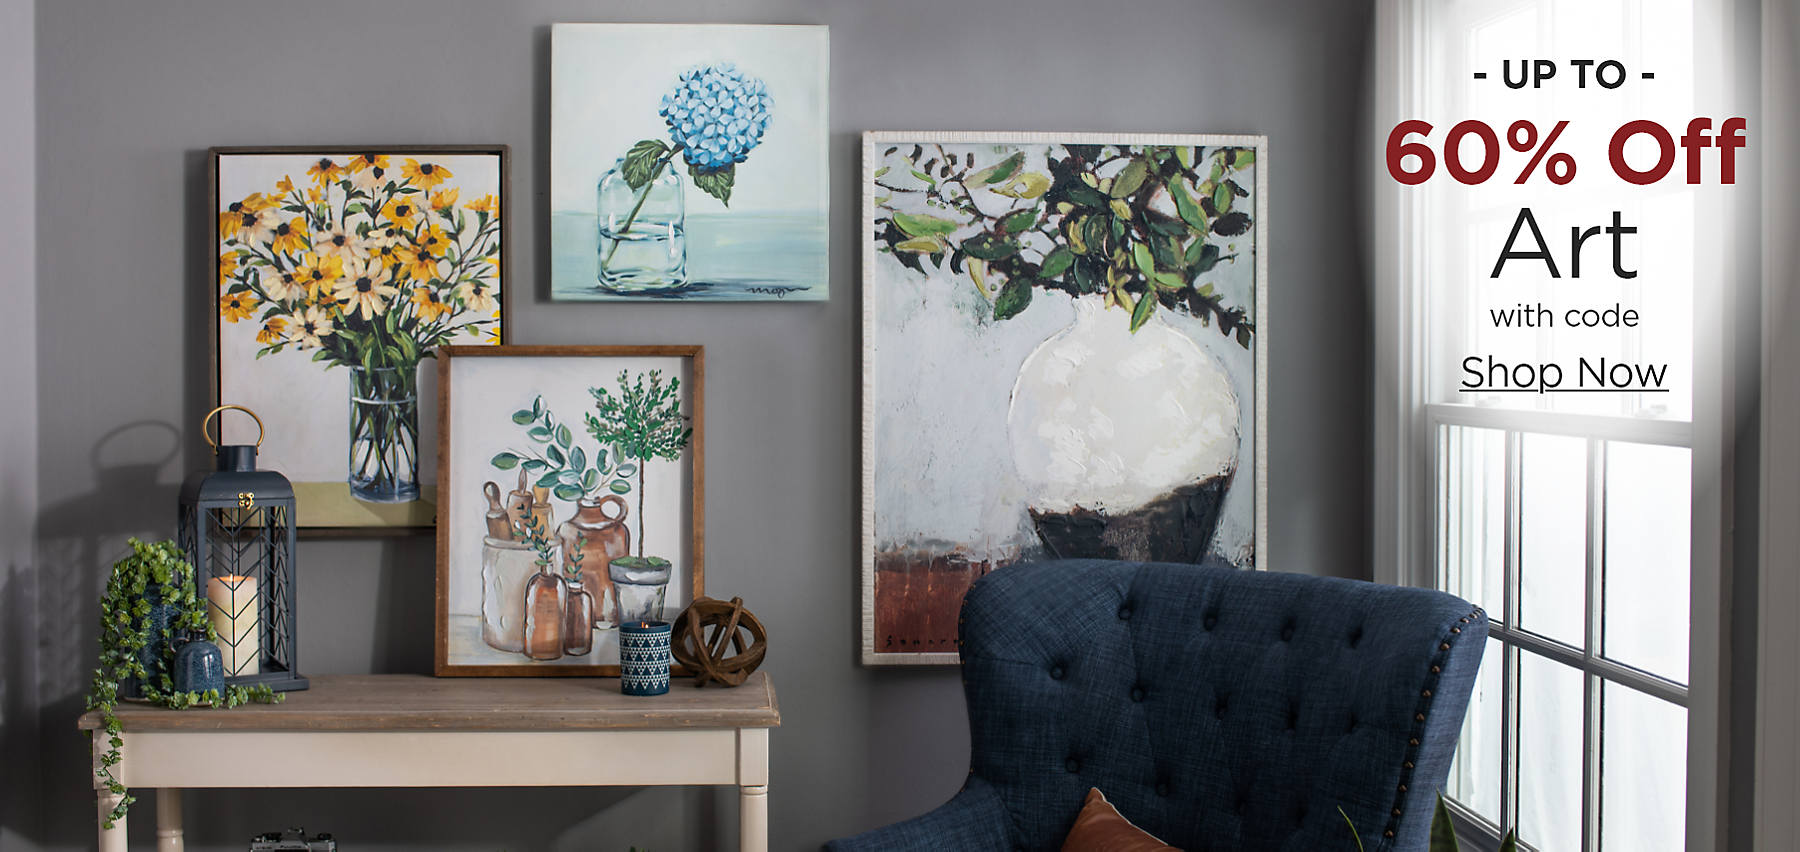 Up to 60% Off Art with code: COZY Shop Now